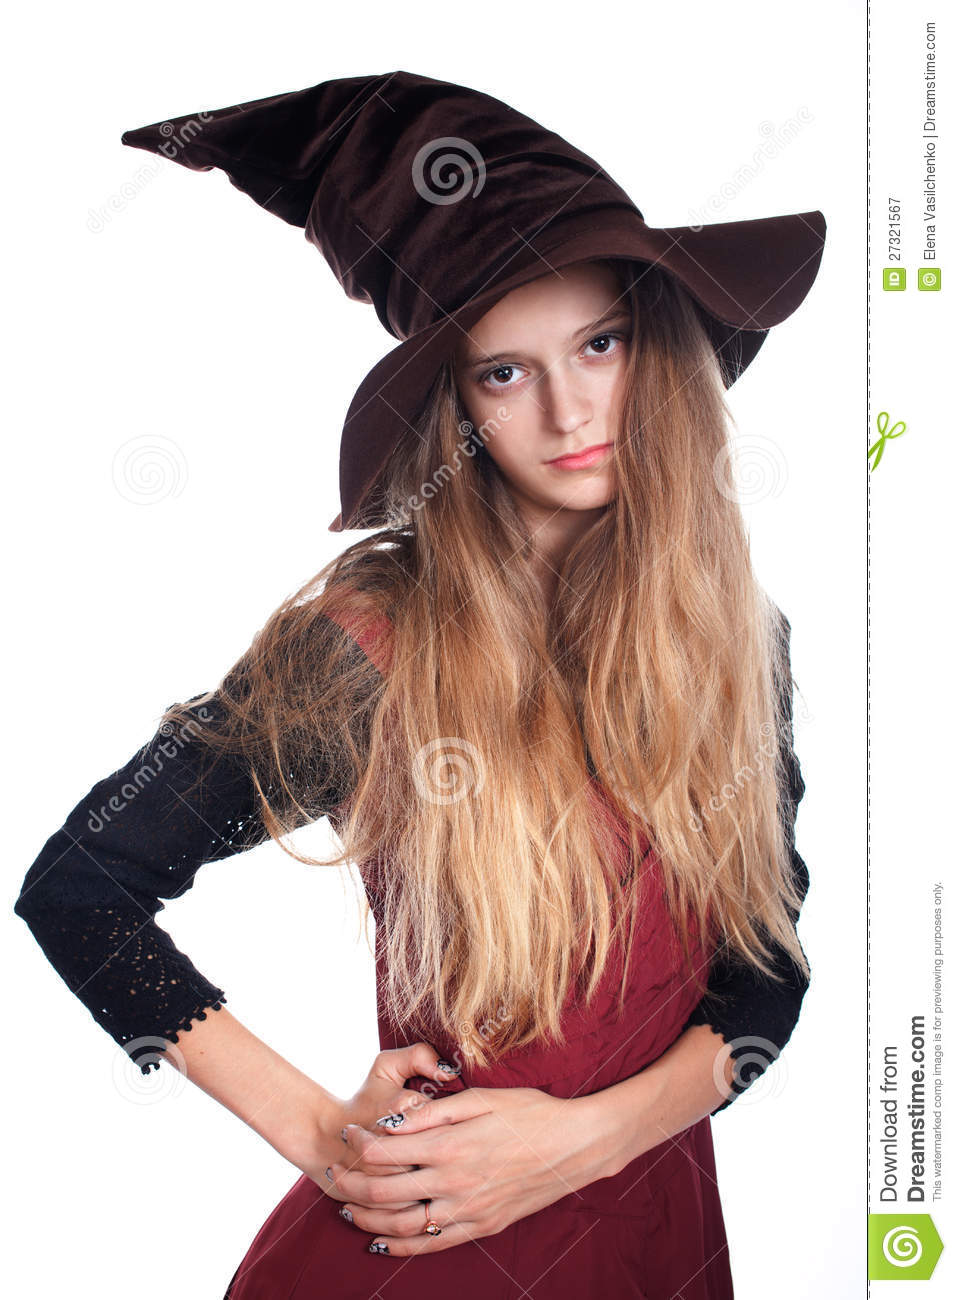 Teen witch outfits out the